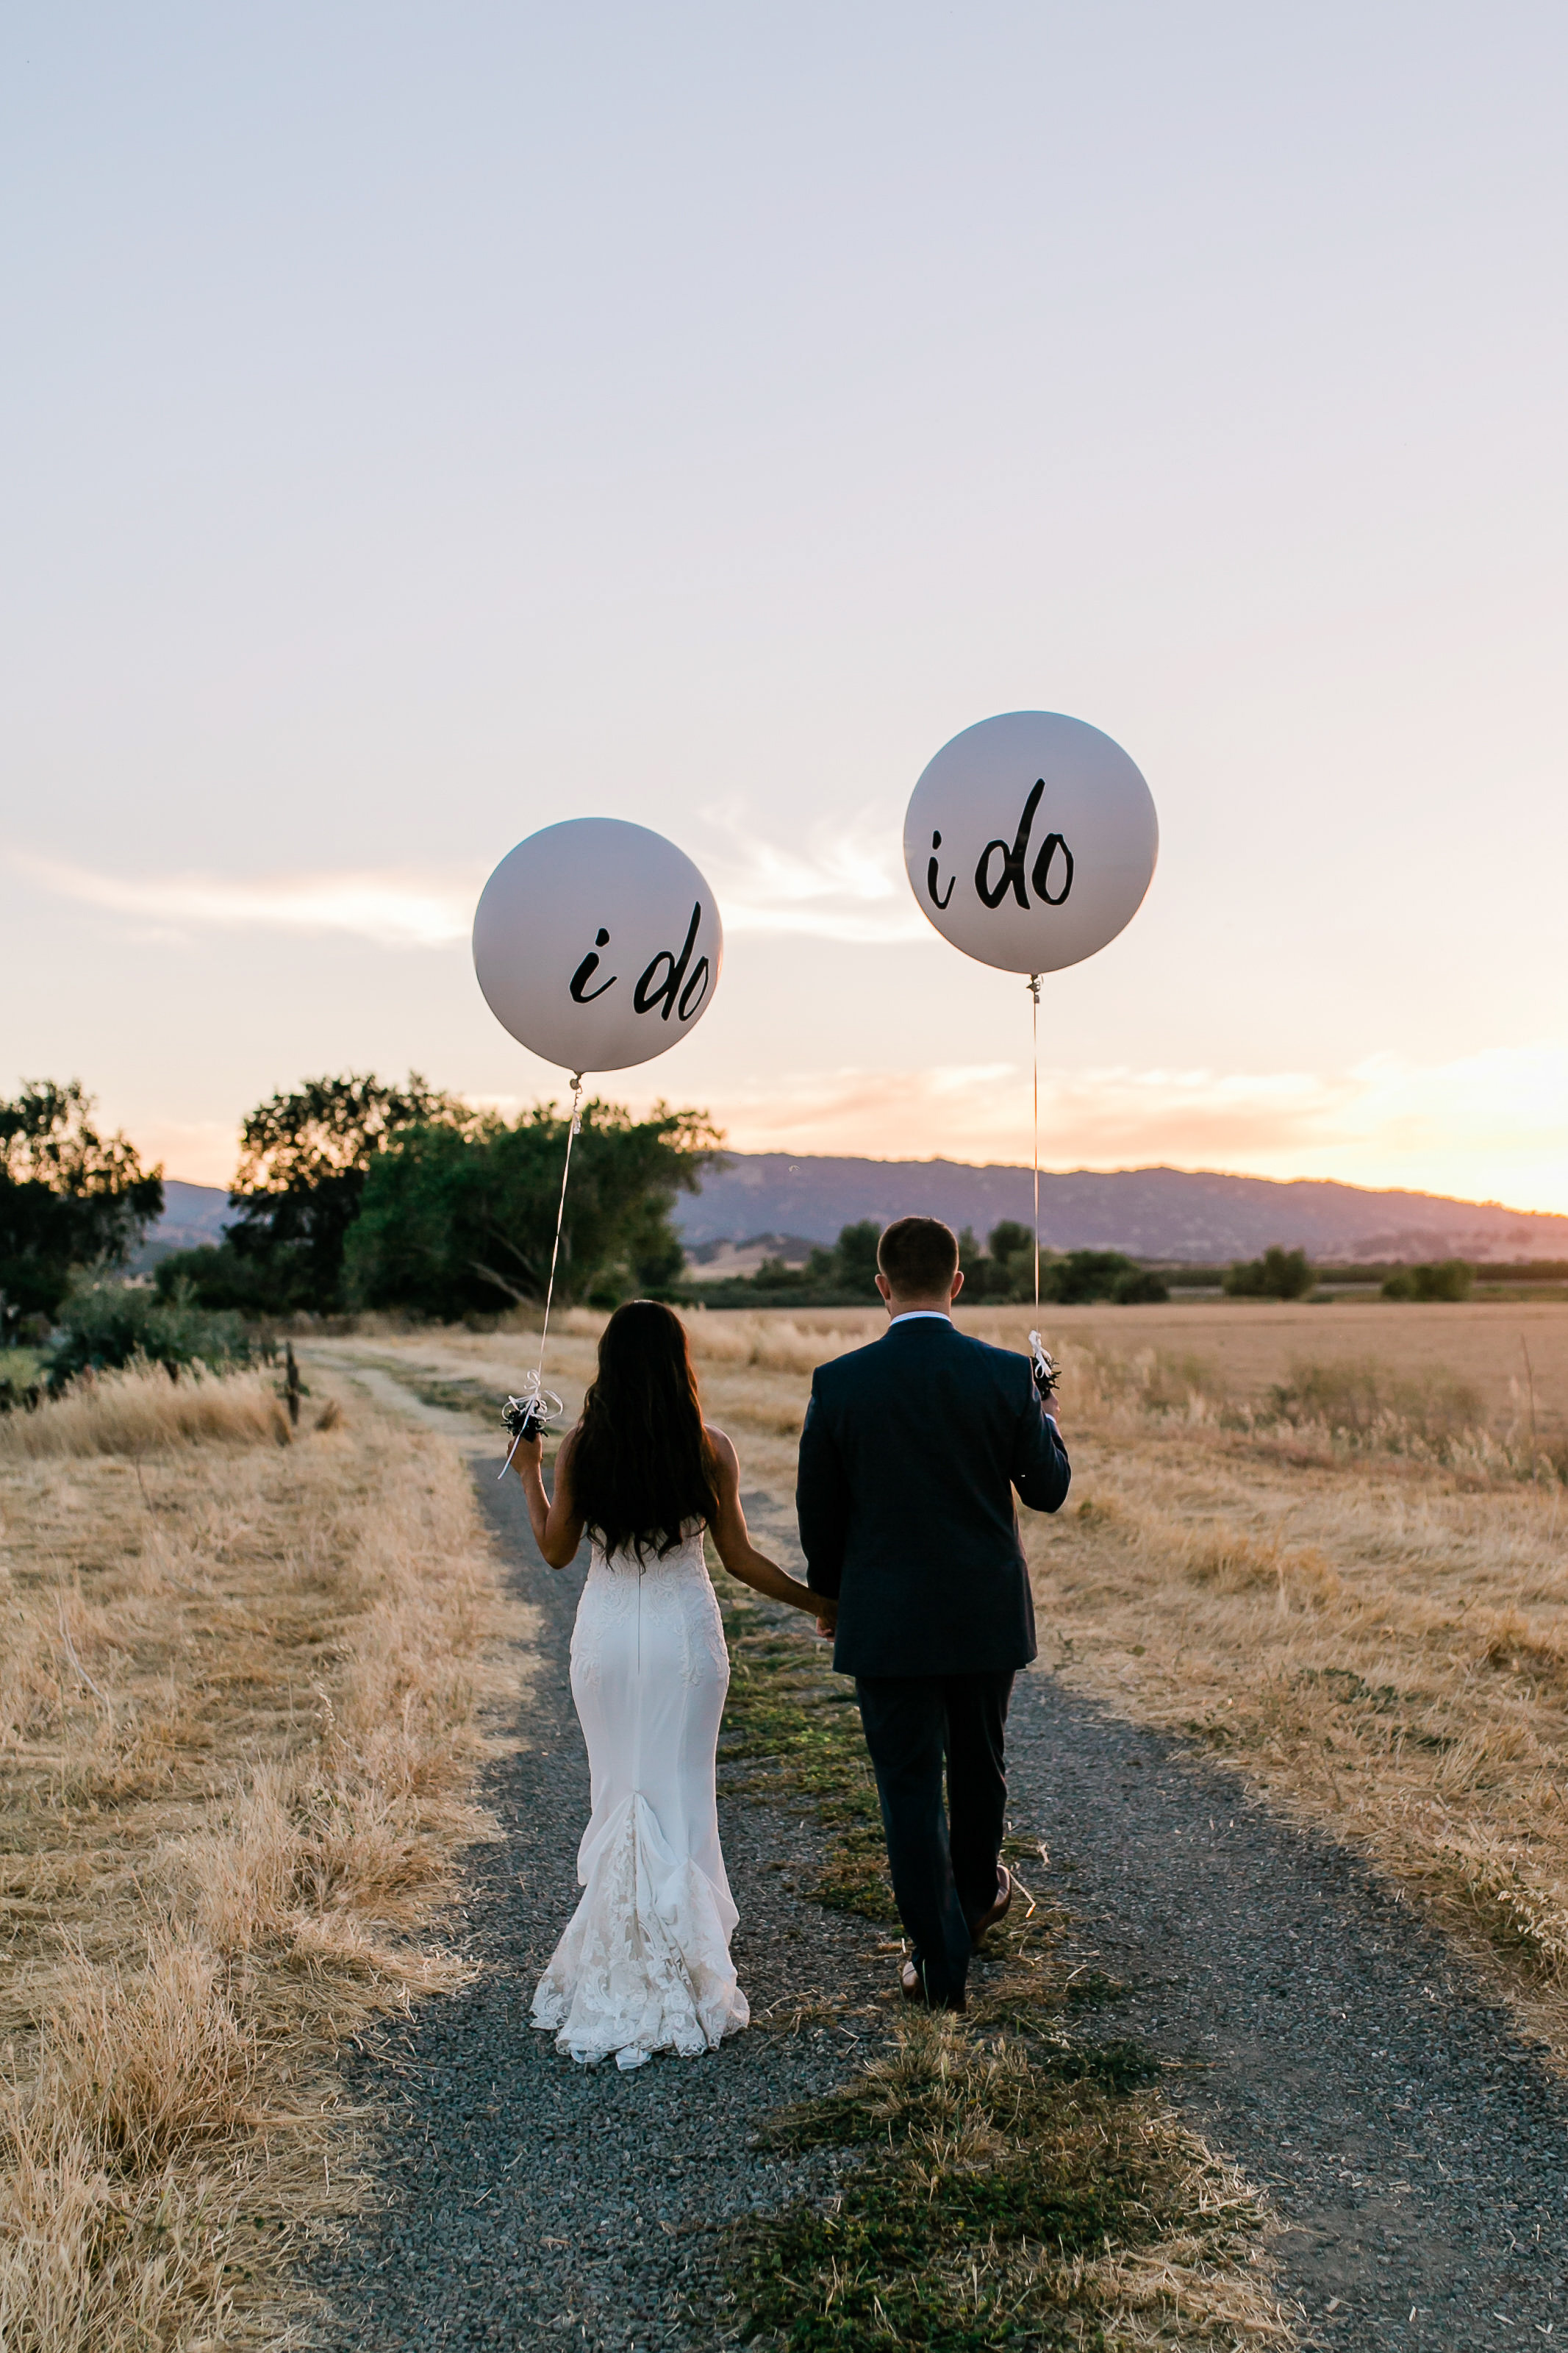 Park Winters Summer Wedding | Country Wedding | Farm Wedding | Bride and Groom Portrait | I Do balloons